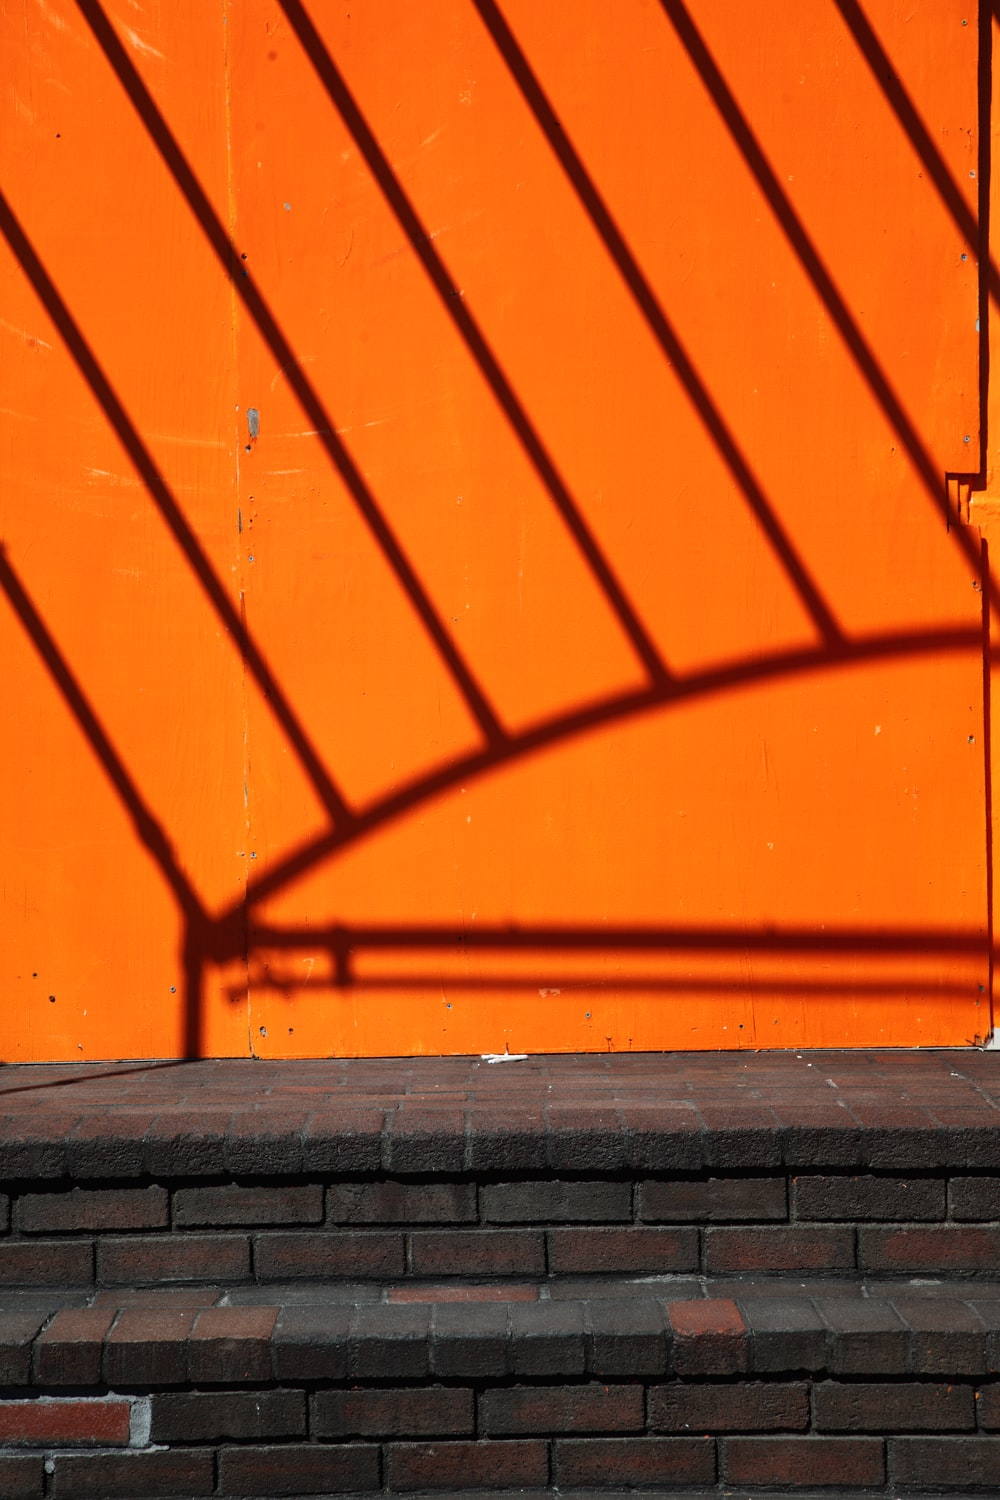 orange wall with shadow of a person